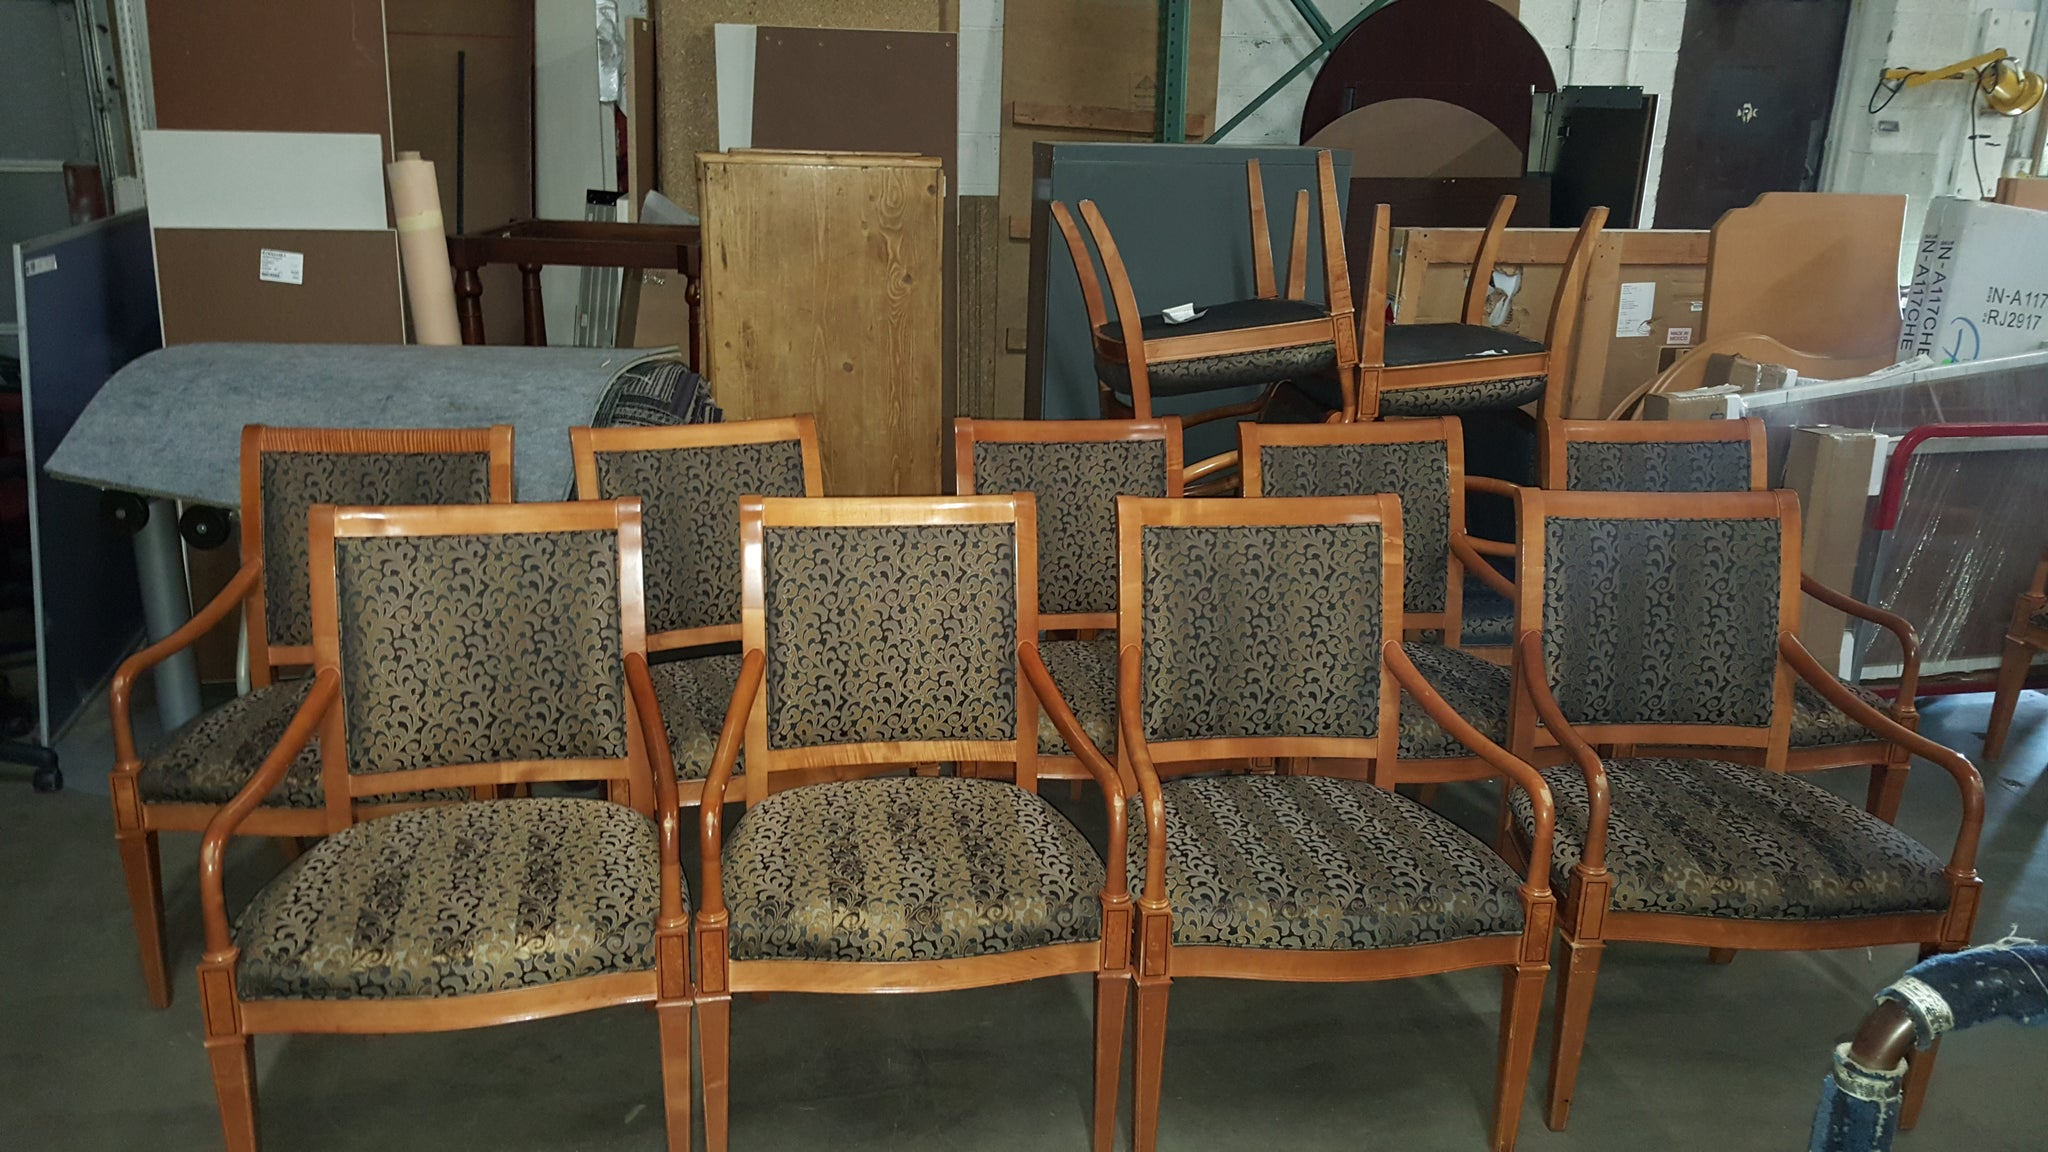 Hbf Guest Chair Used Office Furniture In Minneapolis And St Paul